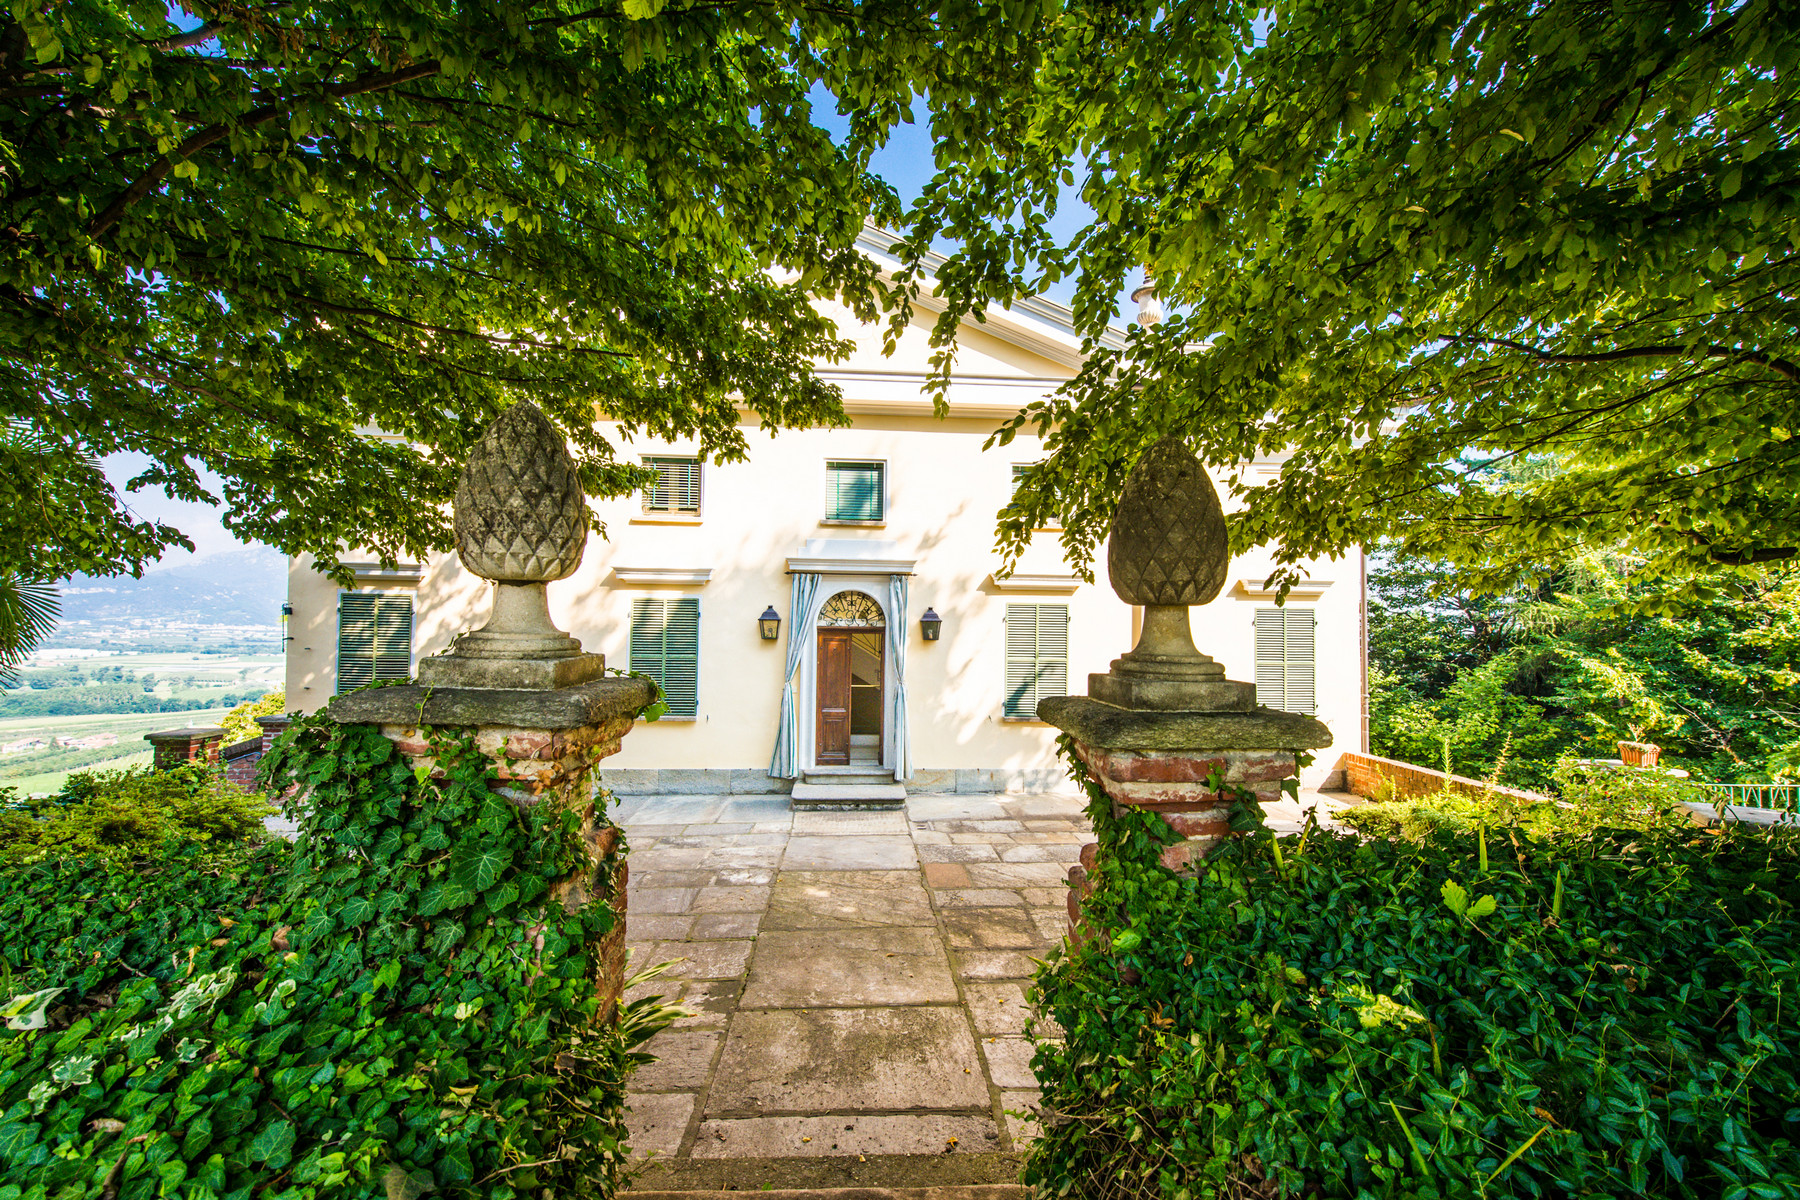 Splendid villa with a winery in a Piedmont